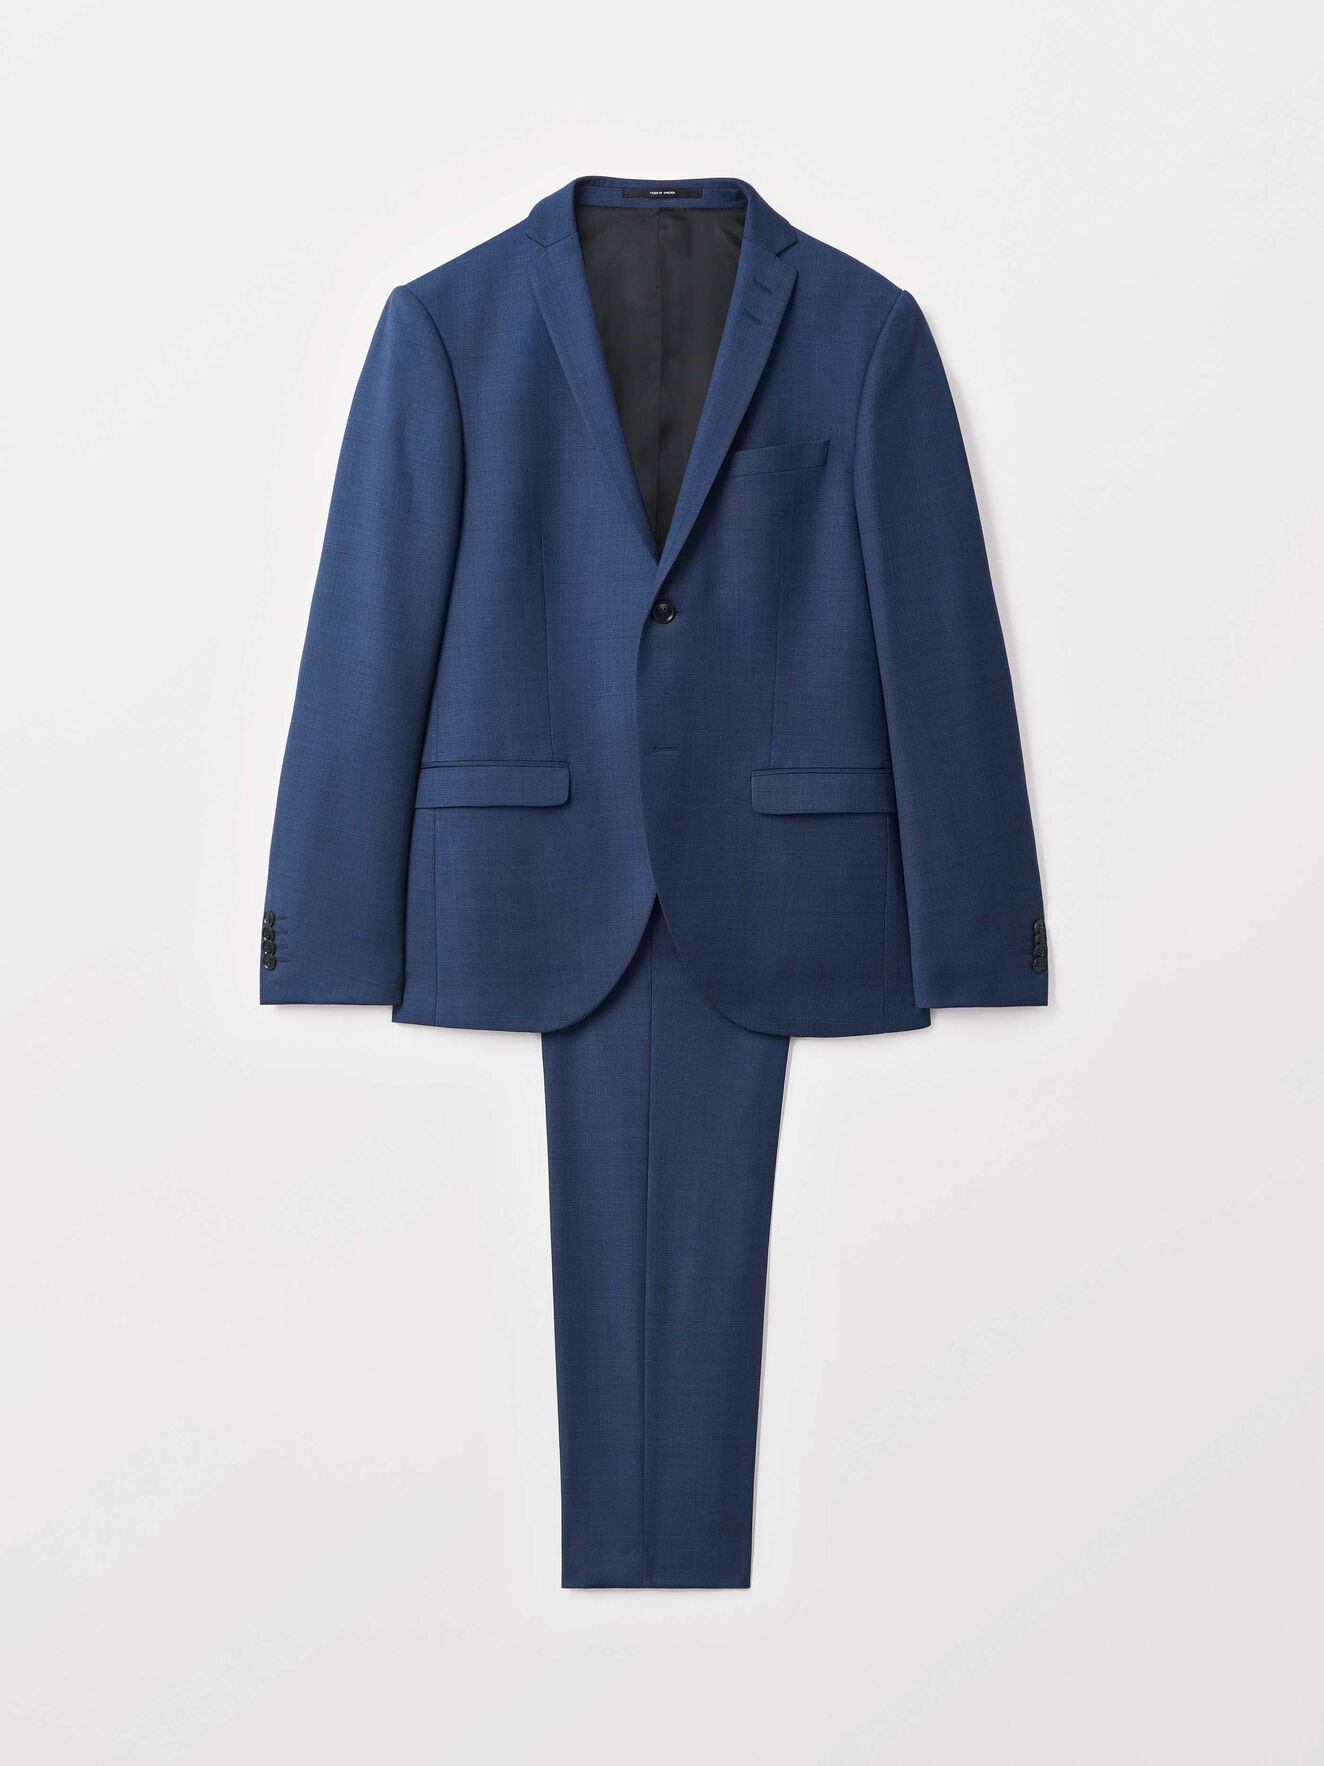 S.Jile Suit in Indigo from Tiger of Sweden